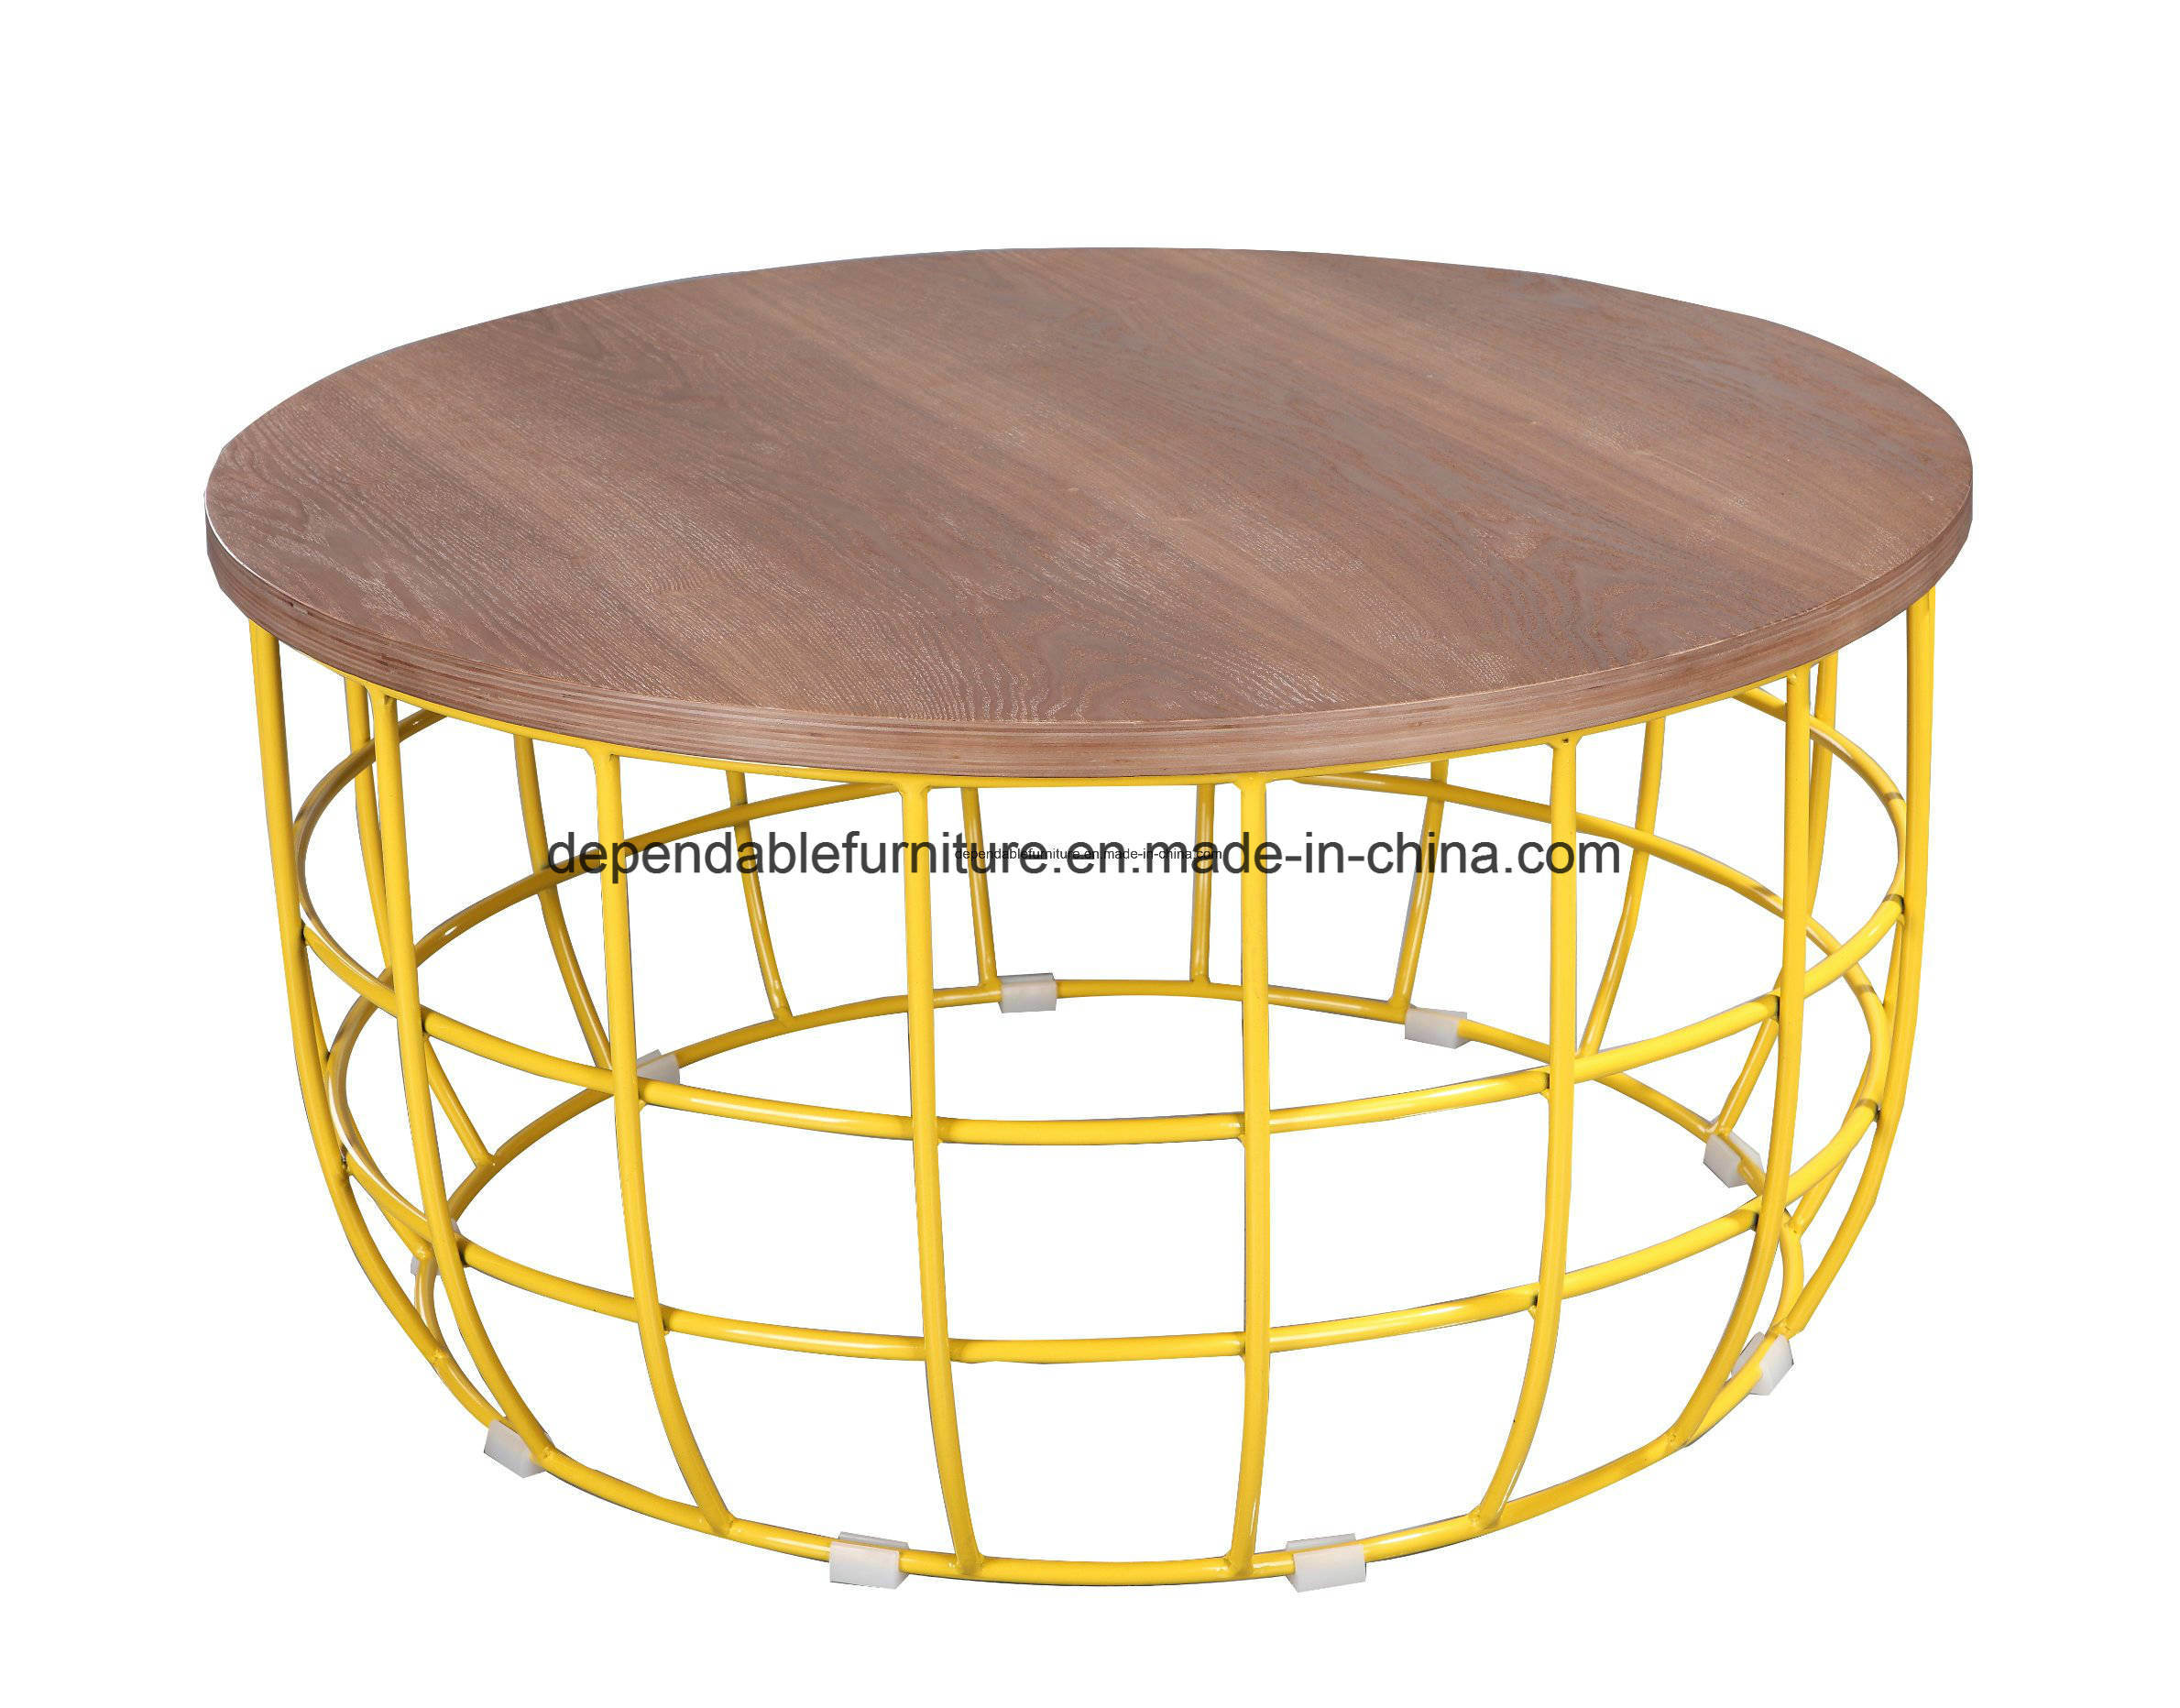 Surprising Hot Item Modern Home Furniture Wire Round Coffee Table Set Pdpeps Interior Chair Design Pdpepsorg